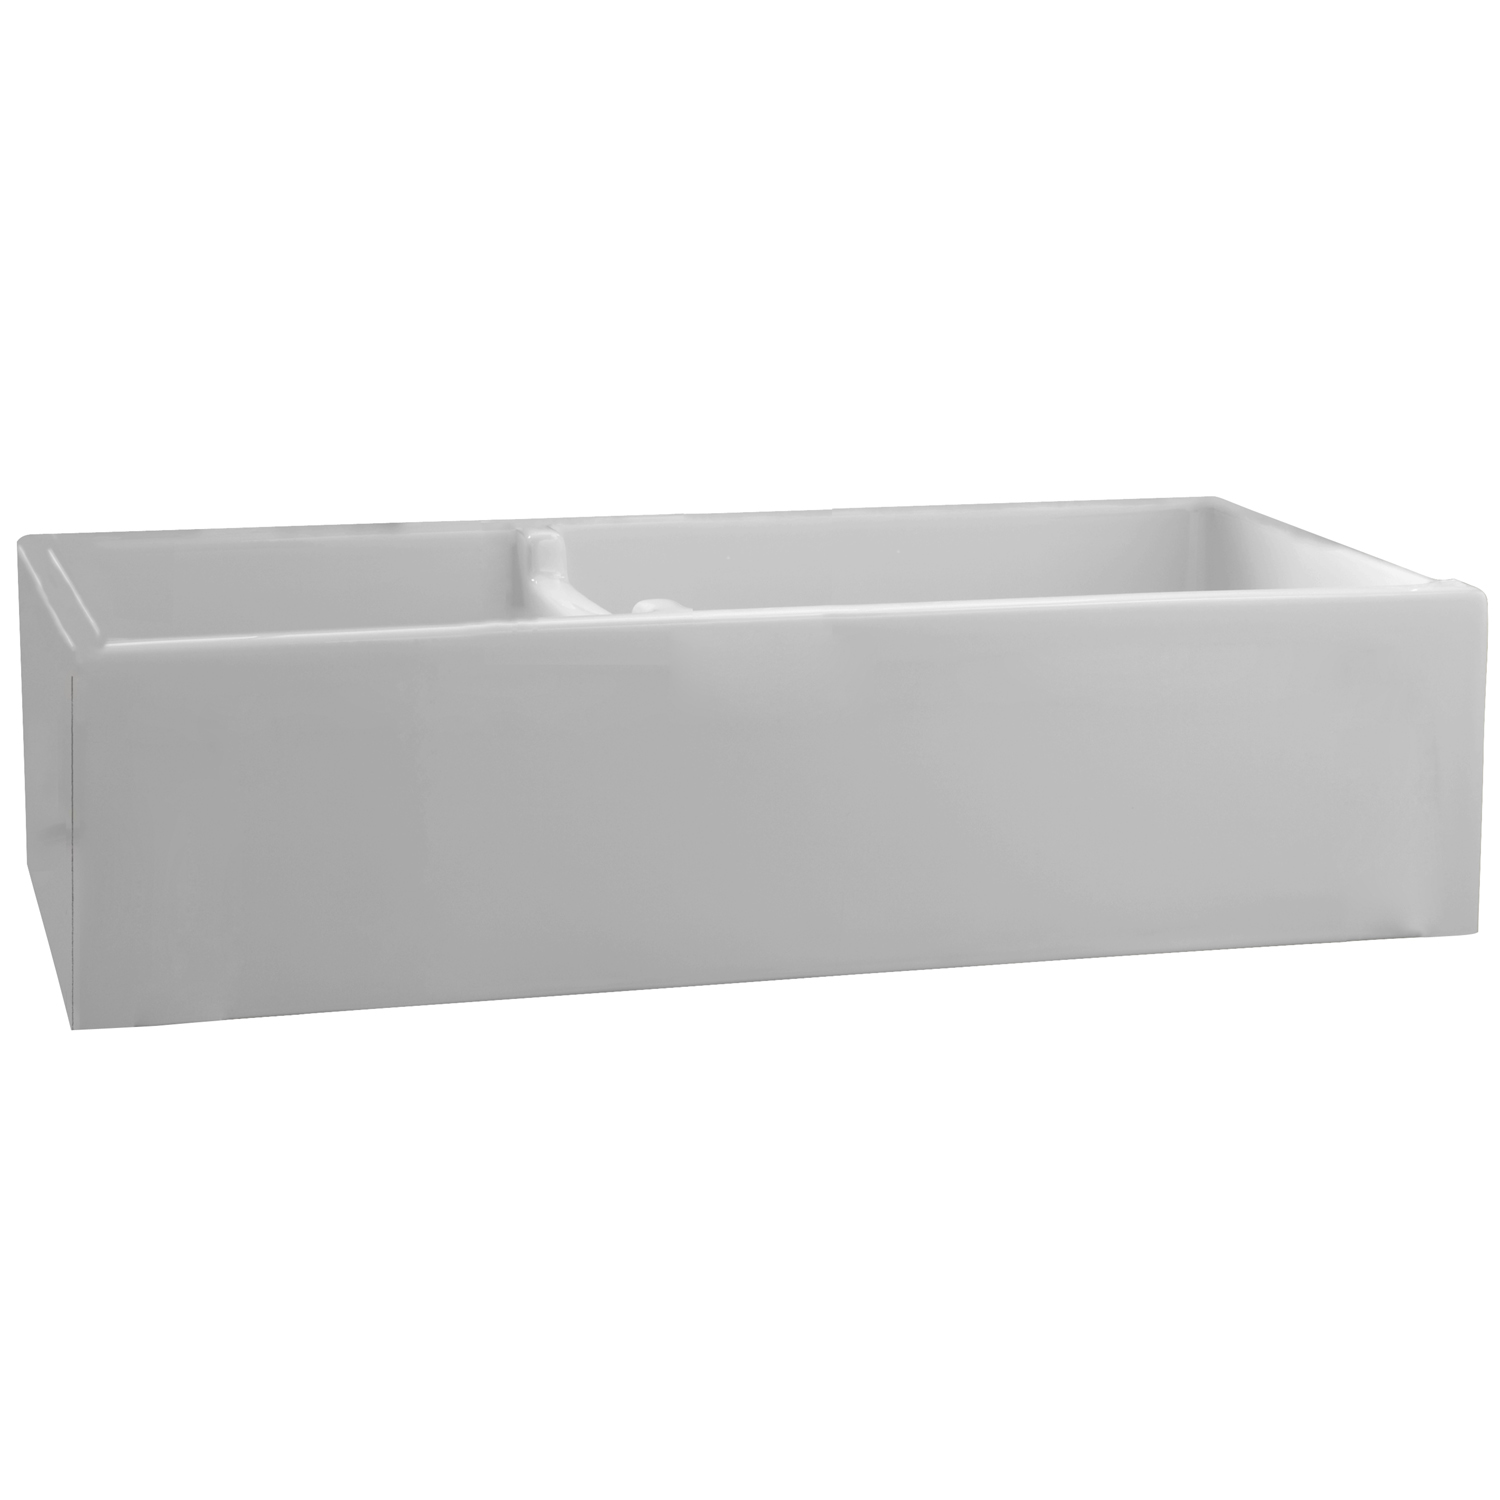 Entrancing New Model of Barclay Sinks for Bathroom or Kitchen Improvement Ideas: Cool Barclay Sinks Single Bowl Double Bowl Stainless Kitchen Sink Barclay Sinks For Kitchen Ideas